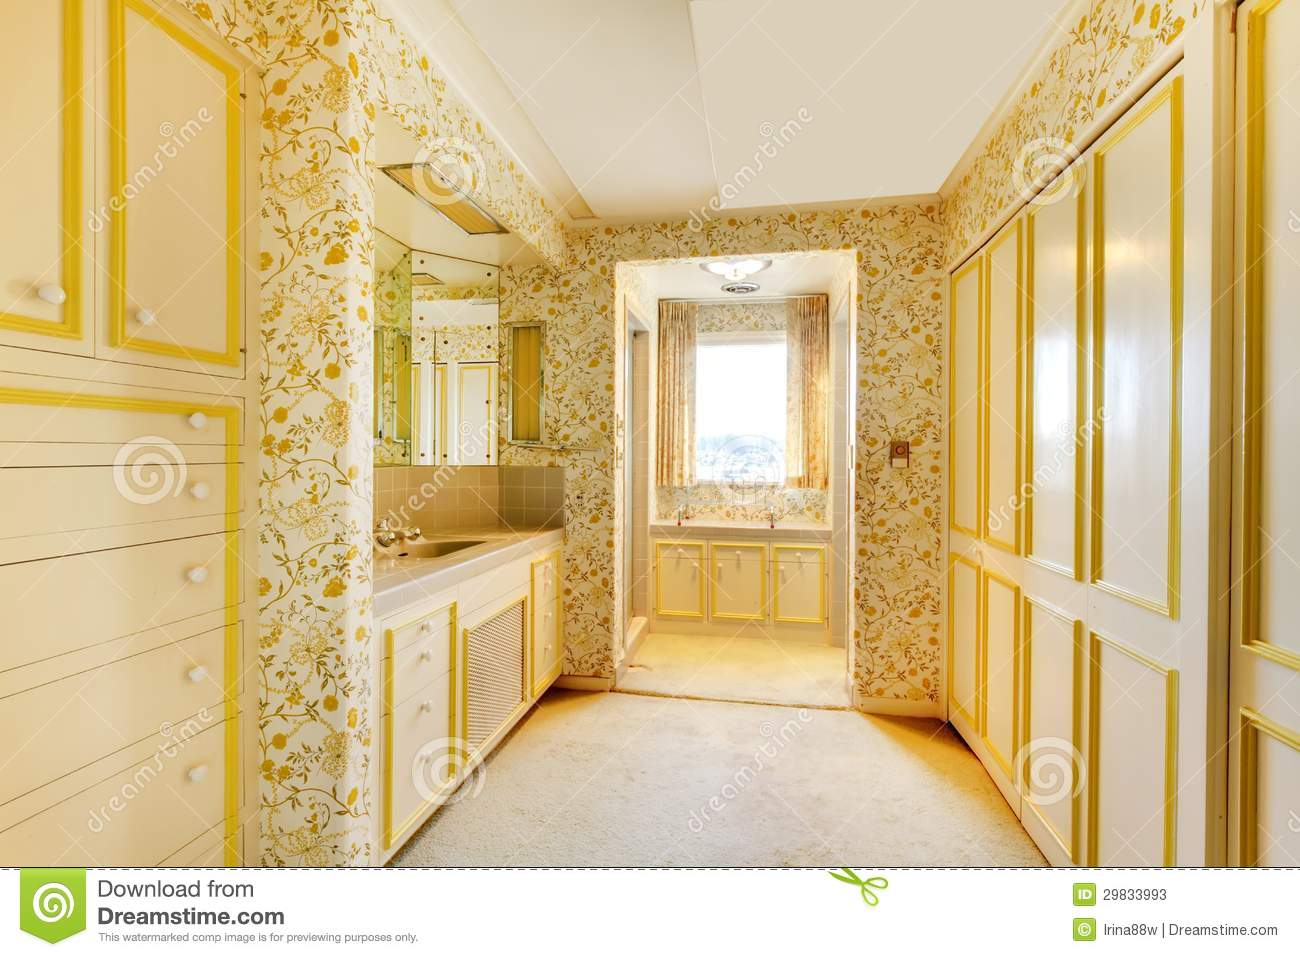 Old American House Bedroom With Wallpaper And Carpet Stock Image Image Of Building